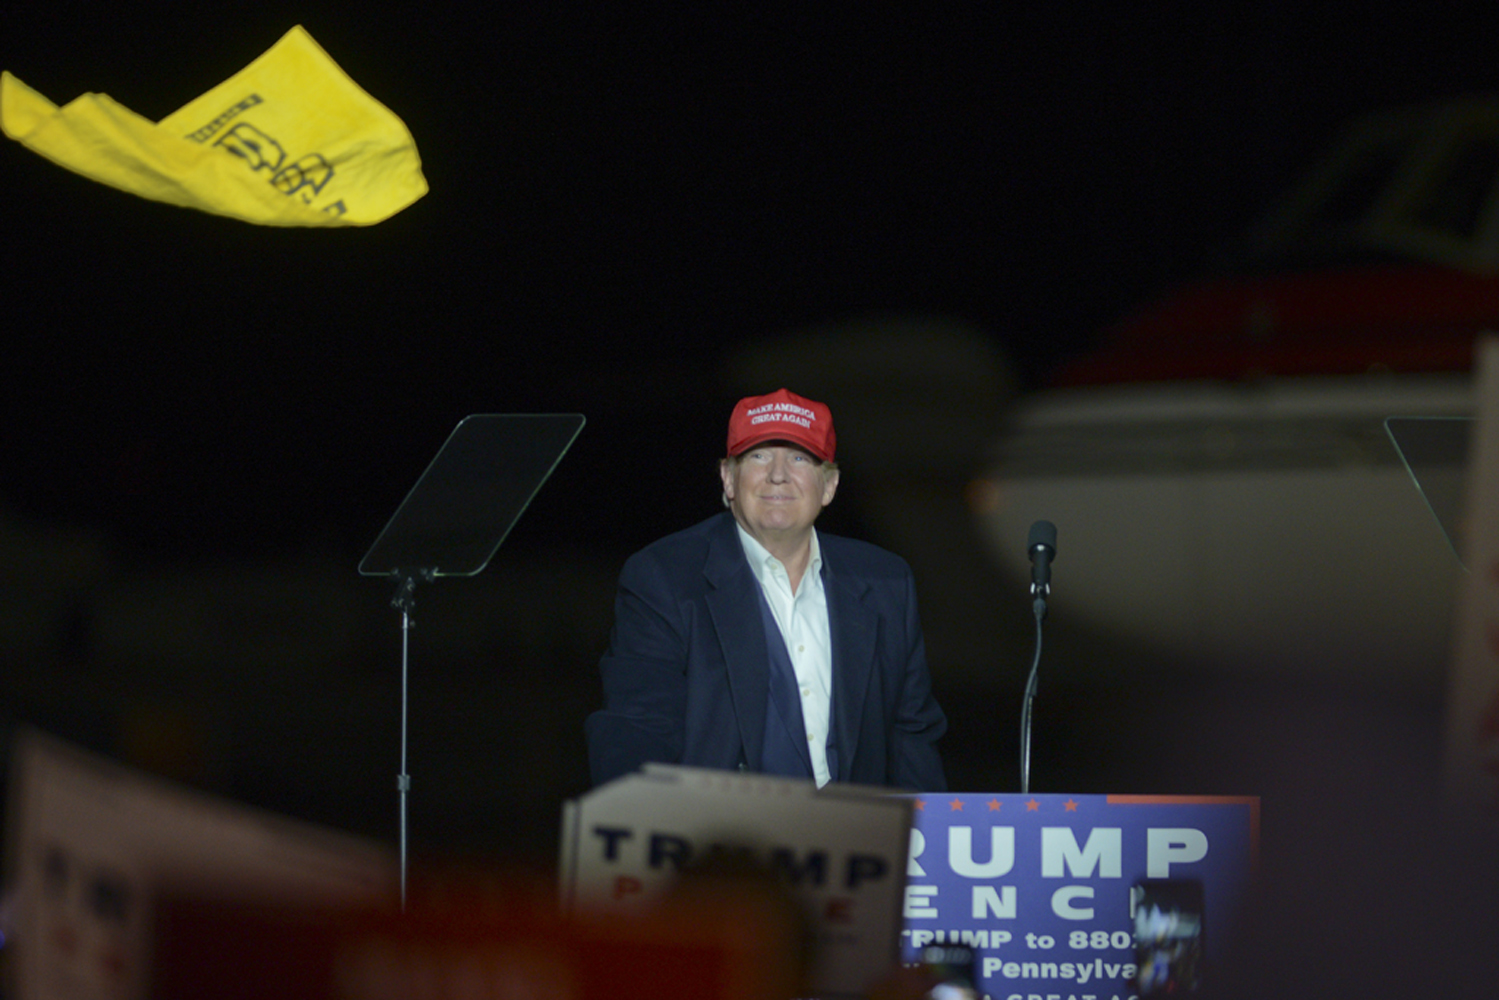 After stepping off of his plane at Pittsburgh International Airport, then-Republican presidential candidate Donald Trump waved a Terrible Towel and threw it into the crowd before his speech on Nov. 6, 2016.